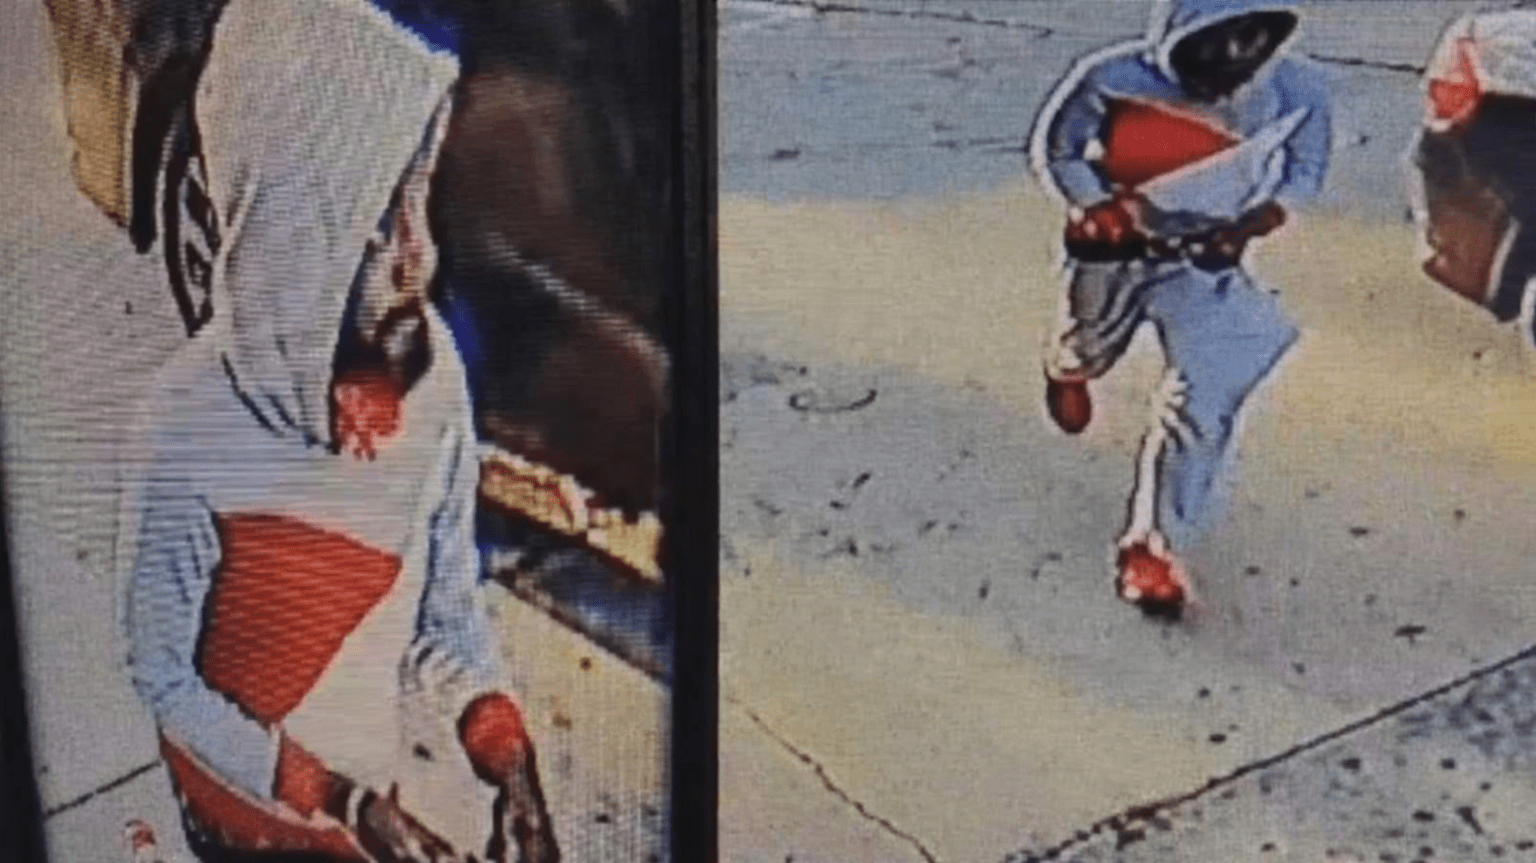 Hate crime? Suspect stabbed random man man in the back while he pumped gas